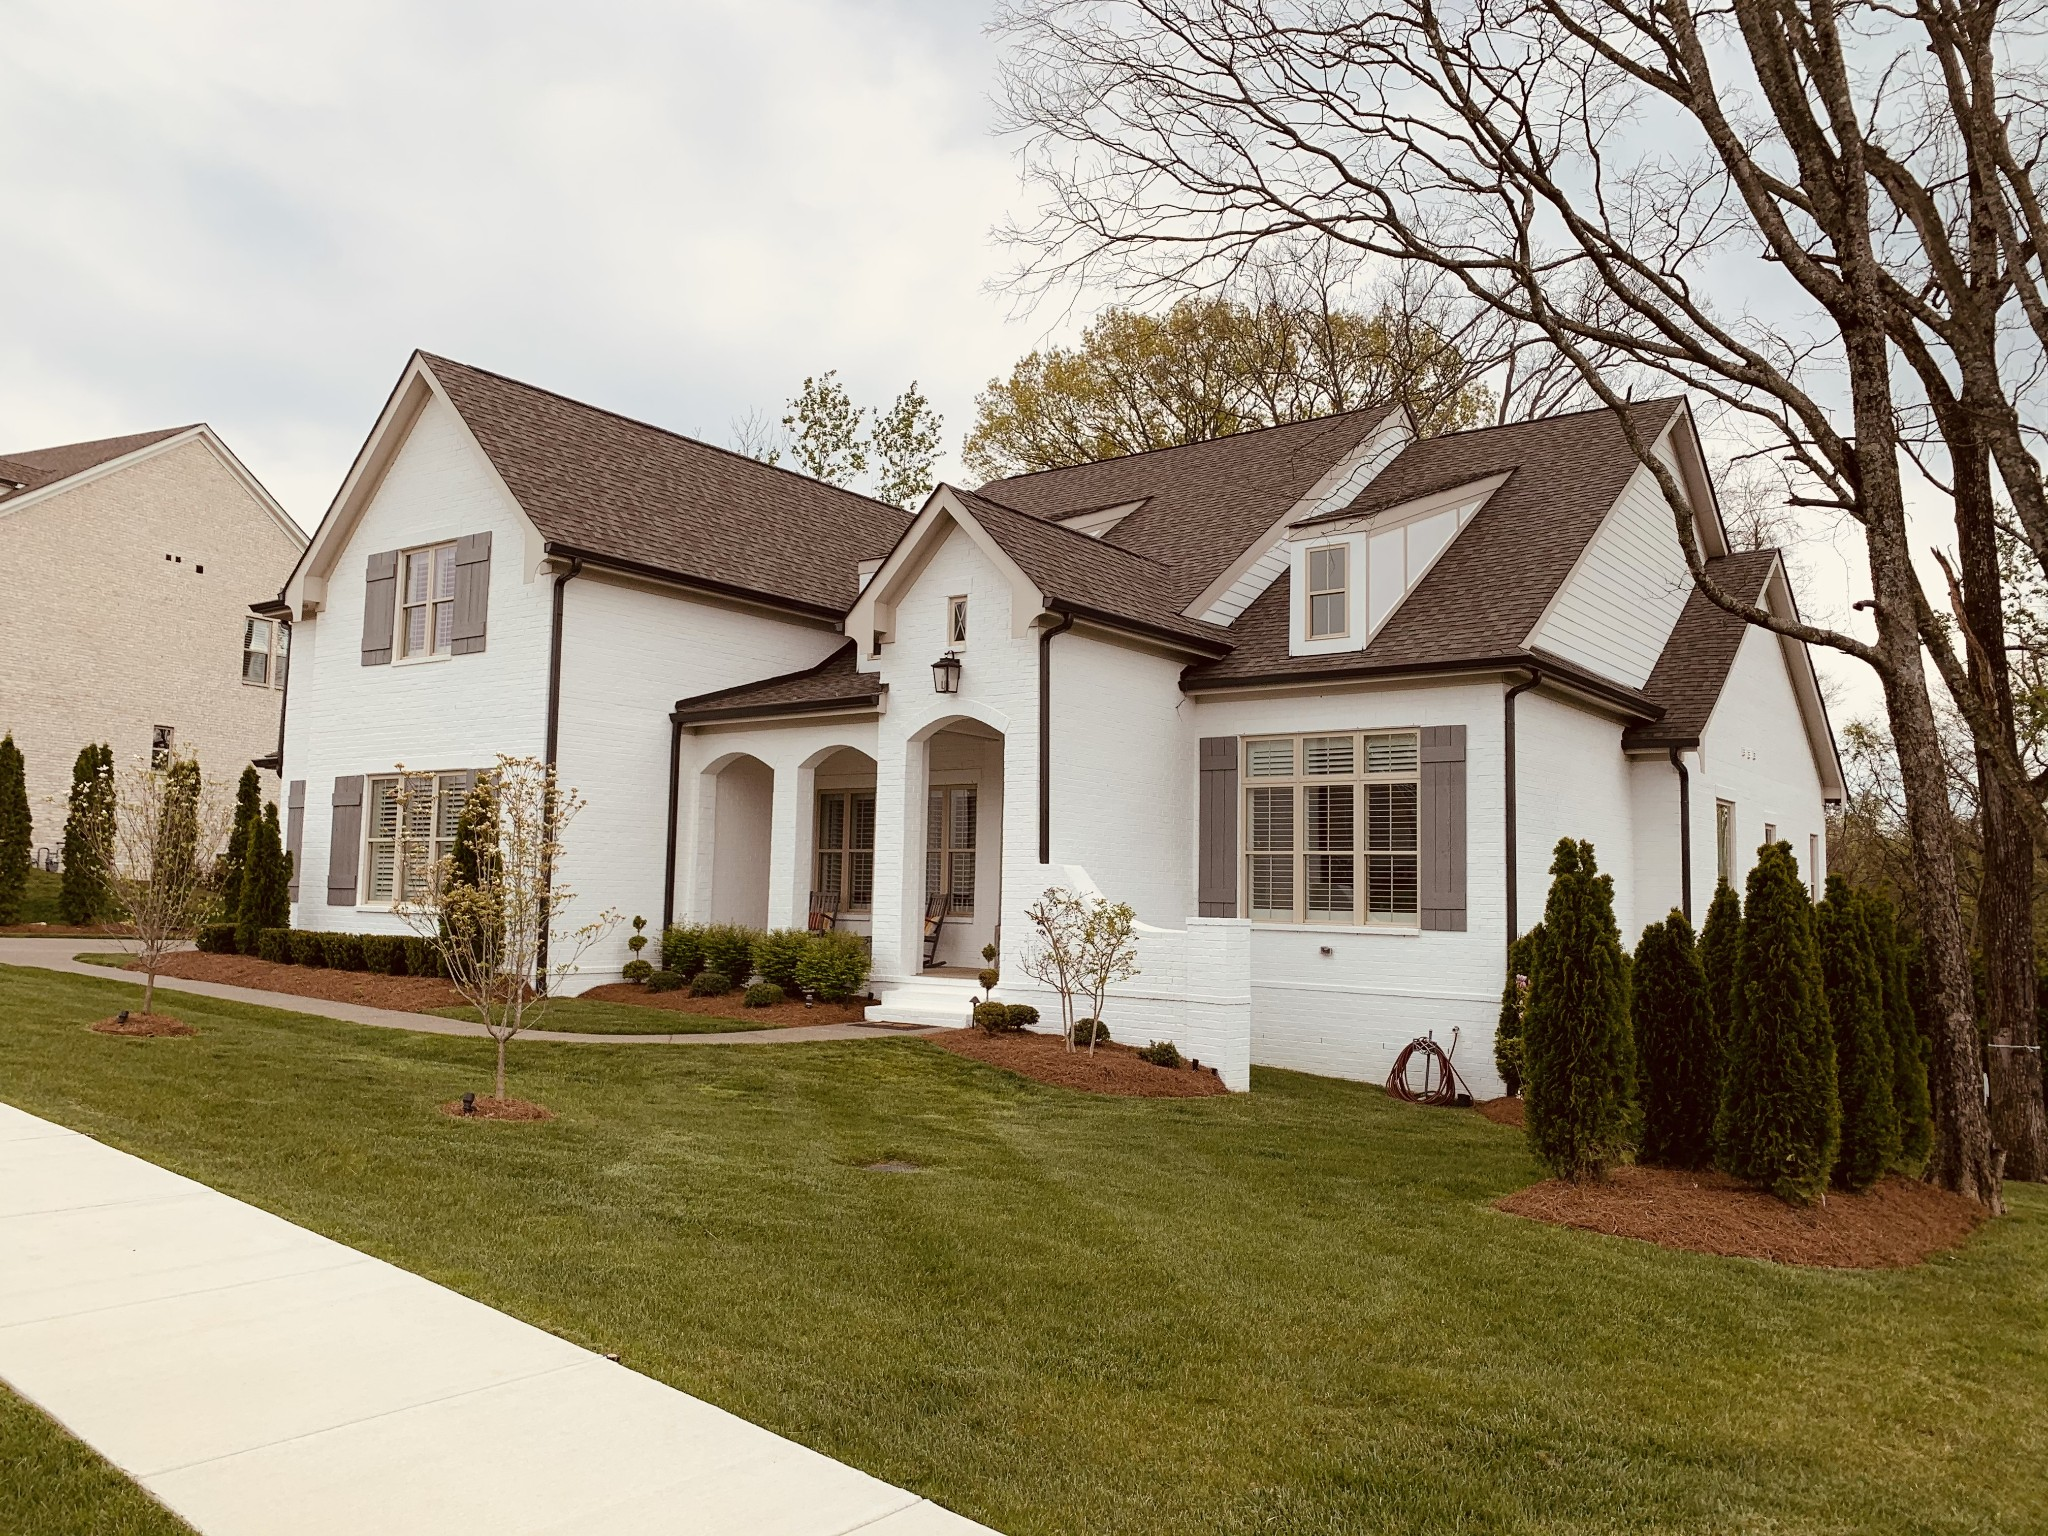 Immaculate custom home built in 2019. This Luxury 5BR/5.5BA home is MOVE IN READY. New Construction w/o the wait! Home is FULLY FURNISHED. 3 beds + office on main. 2 beds + bonus up. Full-yard landscaping, sod & irrigation, landscape lighting, fenced backyard, screened back porch w/ fireplace, plantation shutters, custom fixtures throughout, hardwood floors added throughout, exterior brick painted, and beautifully decorated.